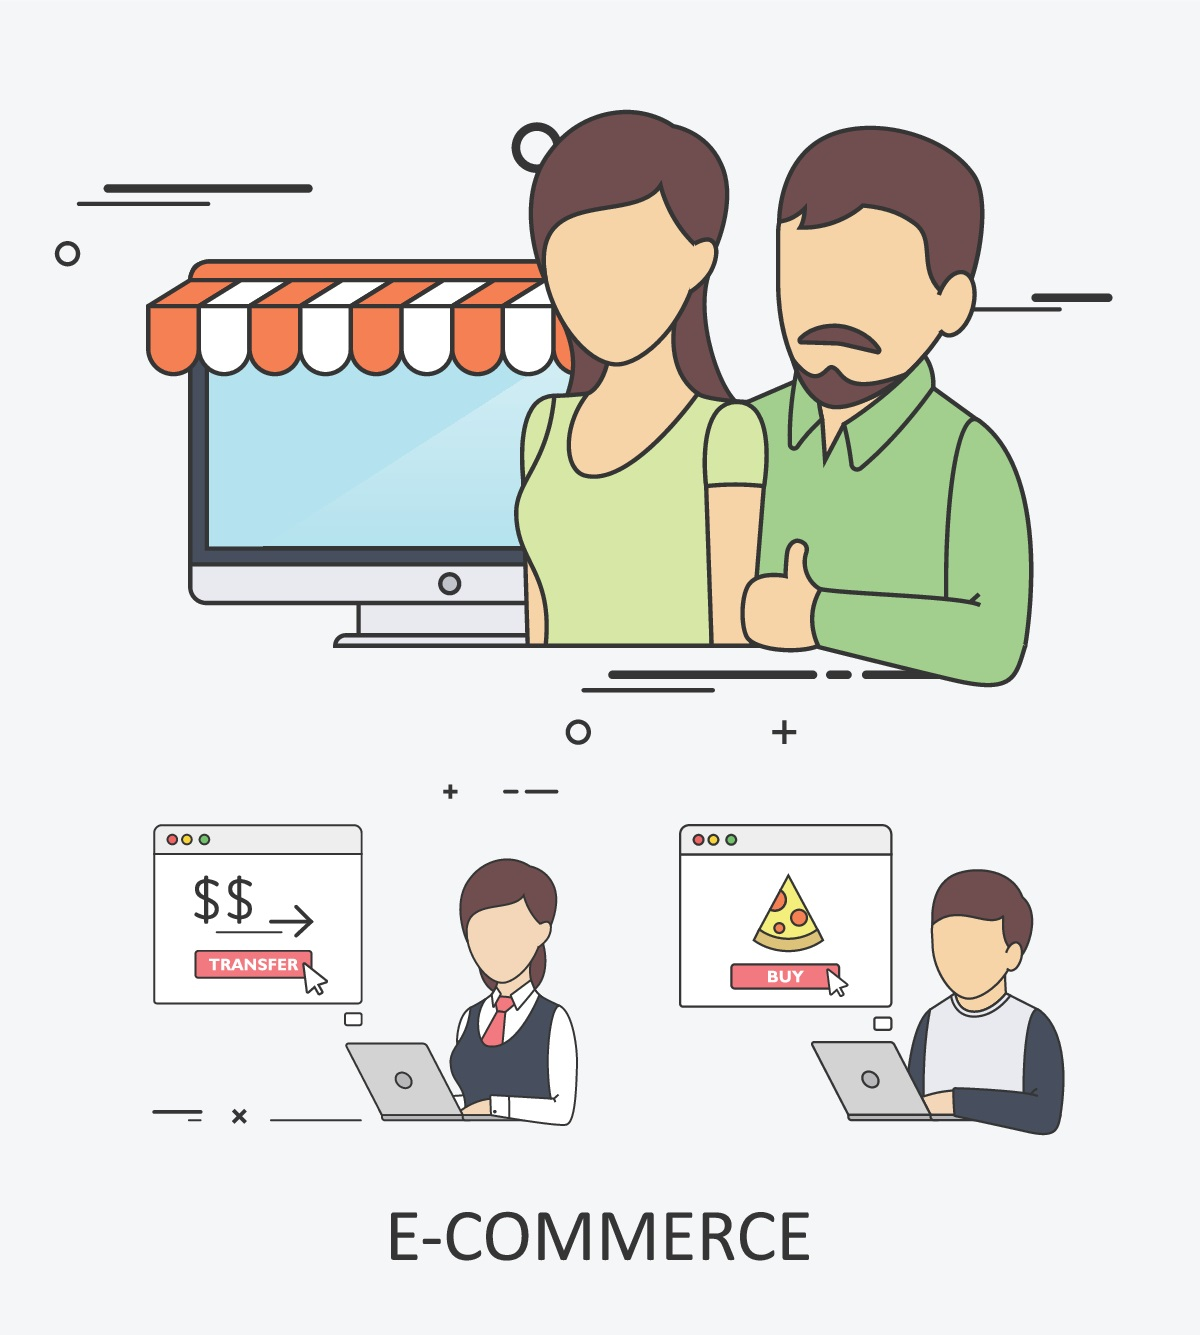 Small_Ecommerce_Business_Strategry.jpg